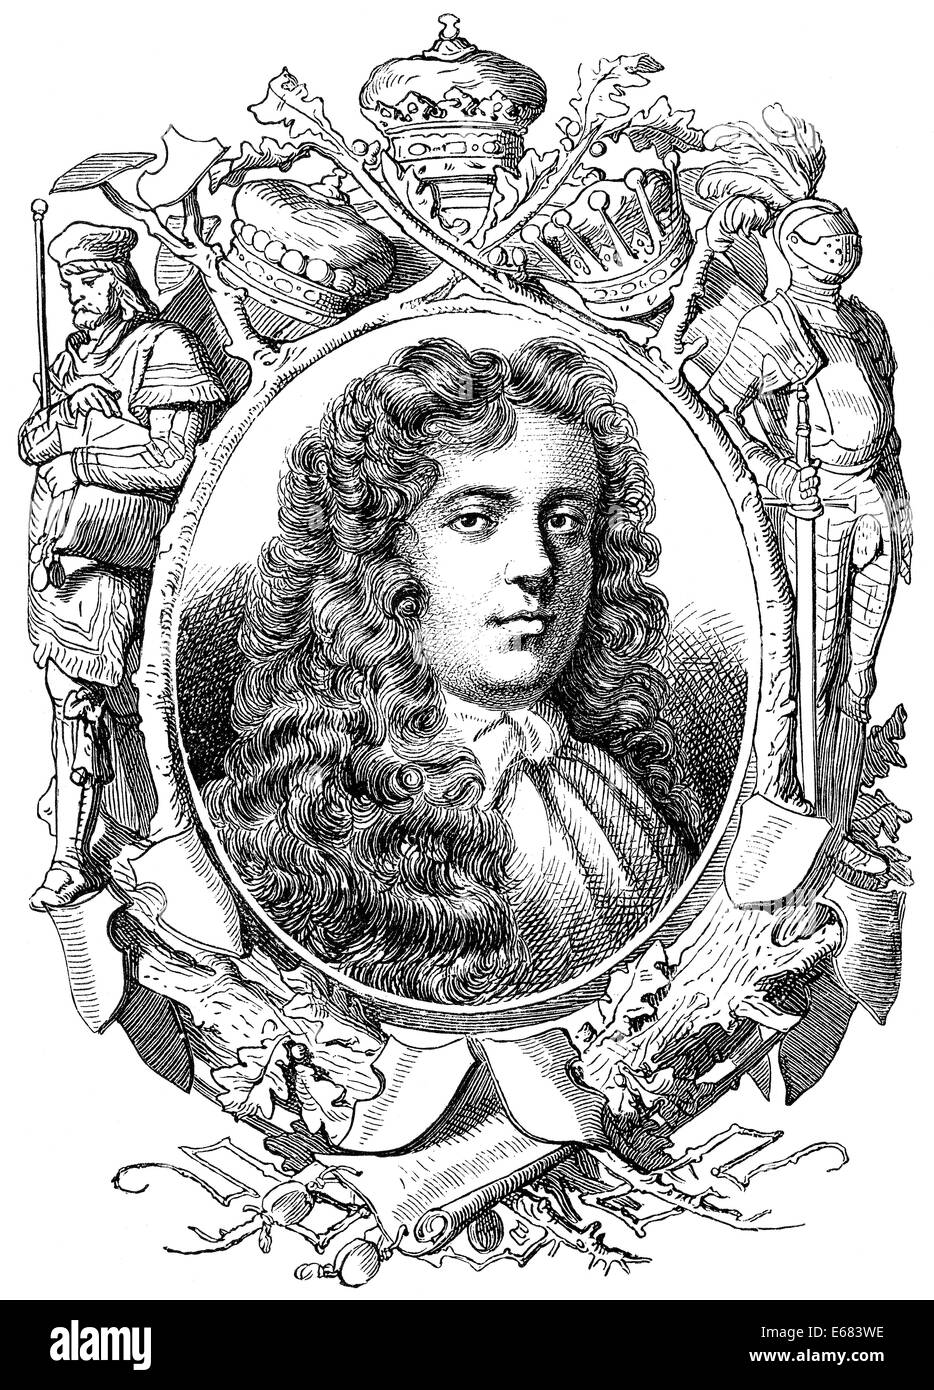 James Scott, 1st Duke of Monmouth, 1649 - 1685, English pretender to the throne, commander and leader of the Monmouth - Stock Image